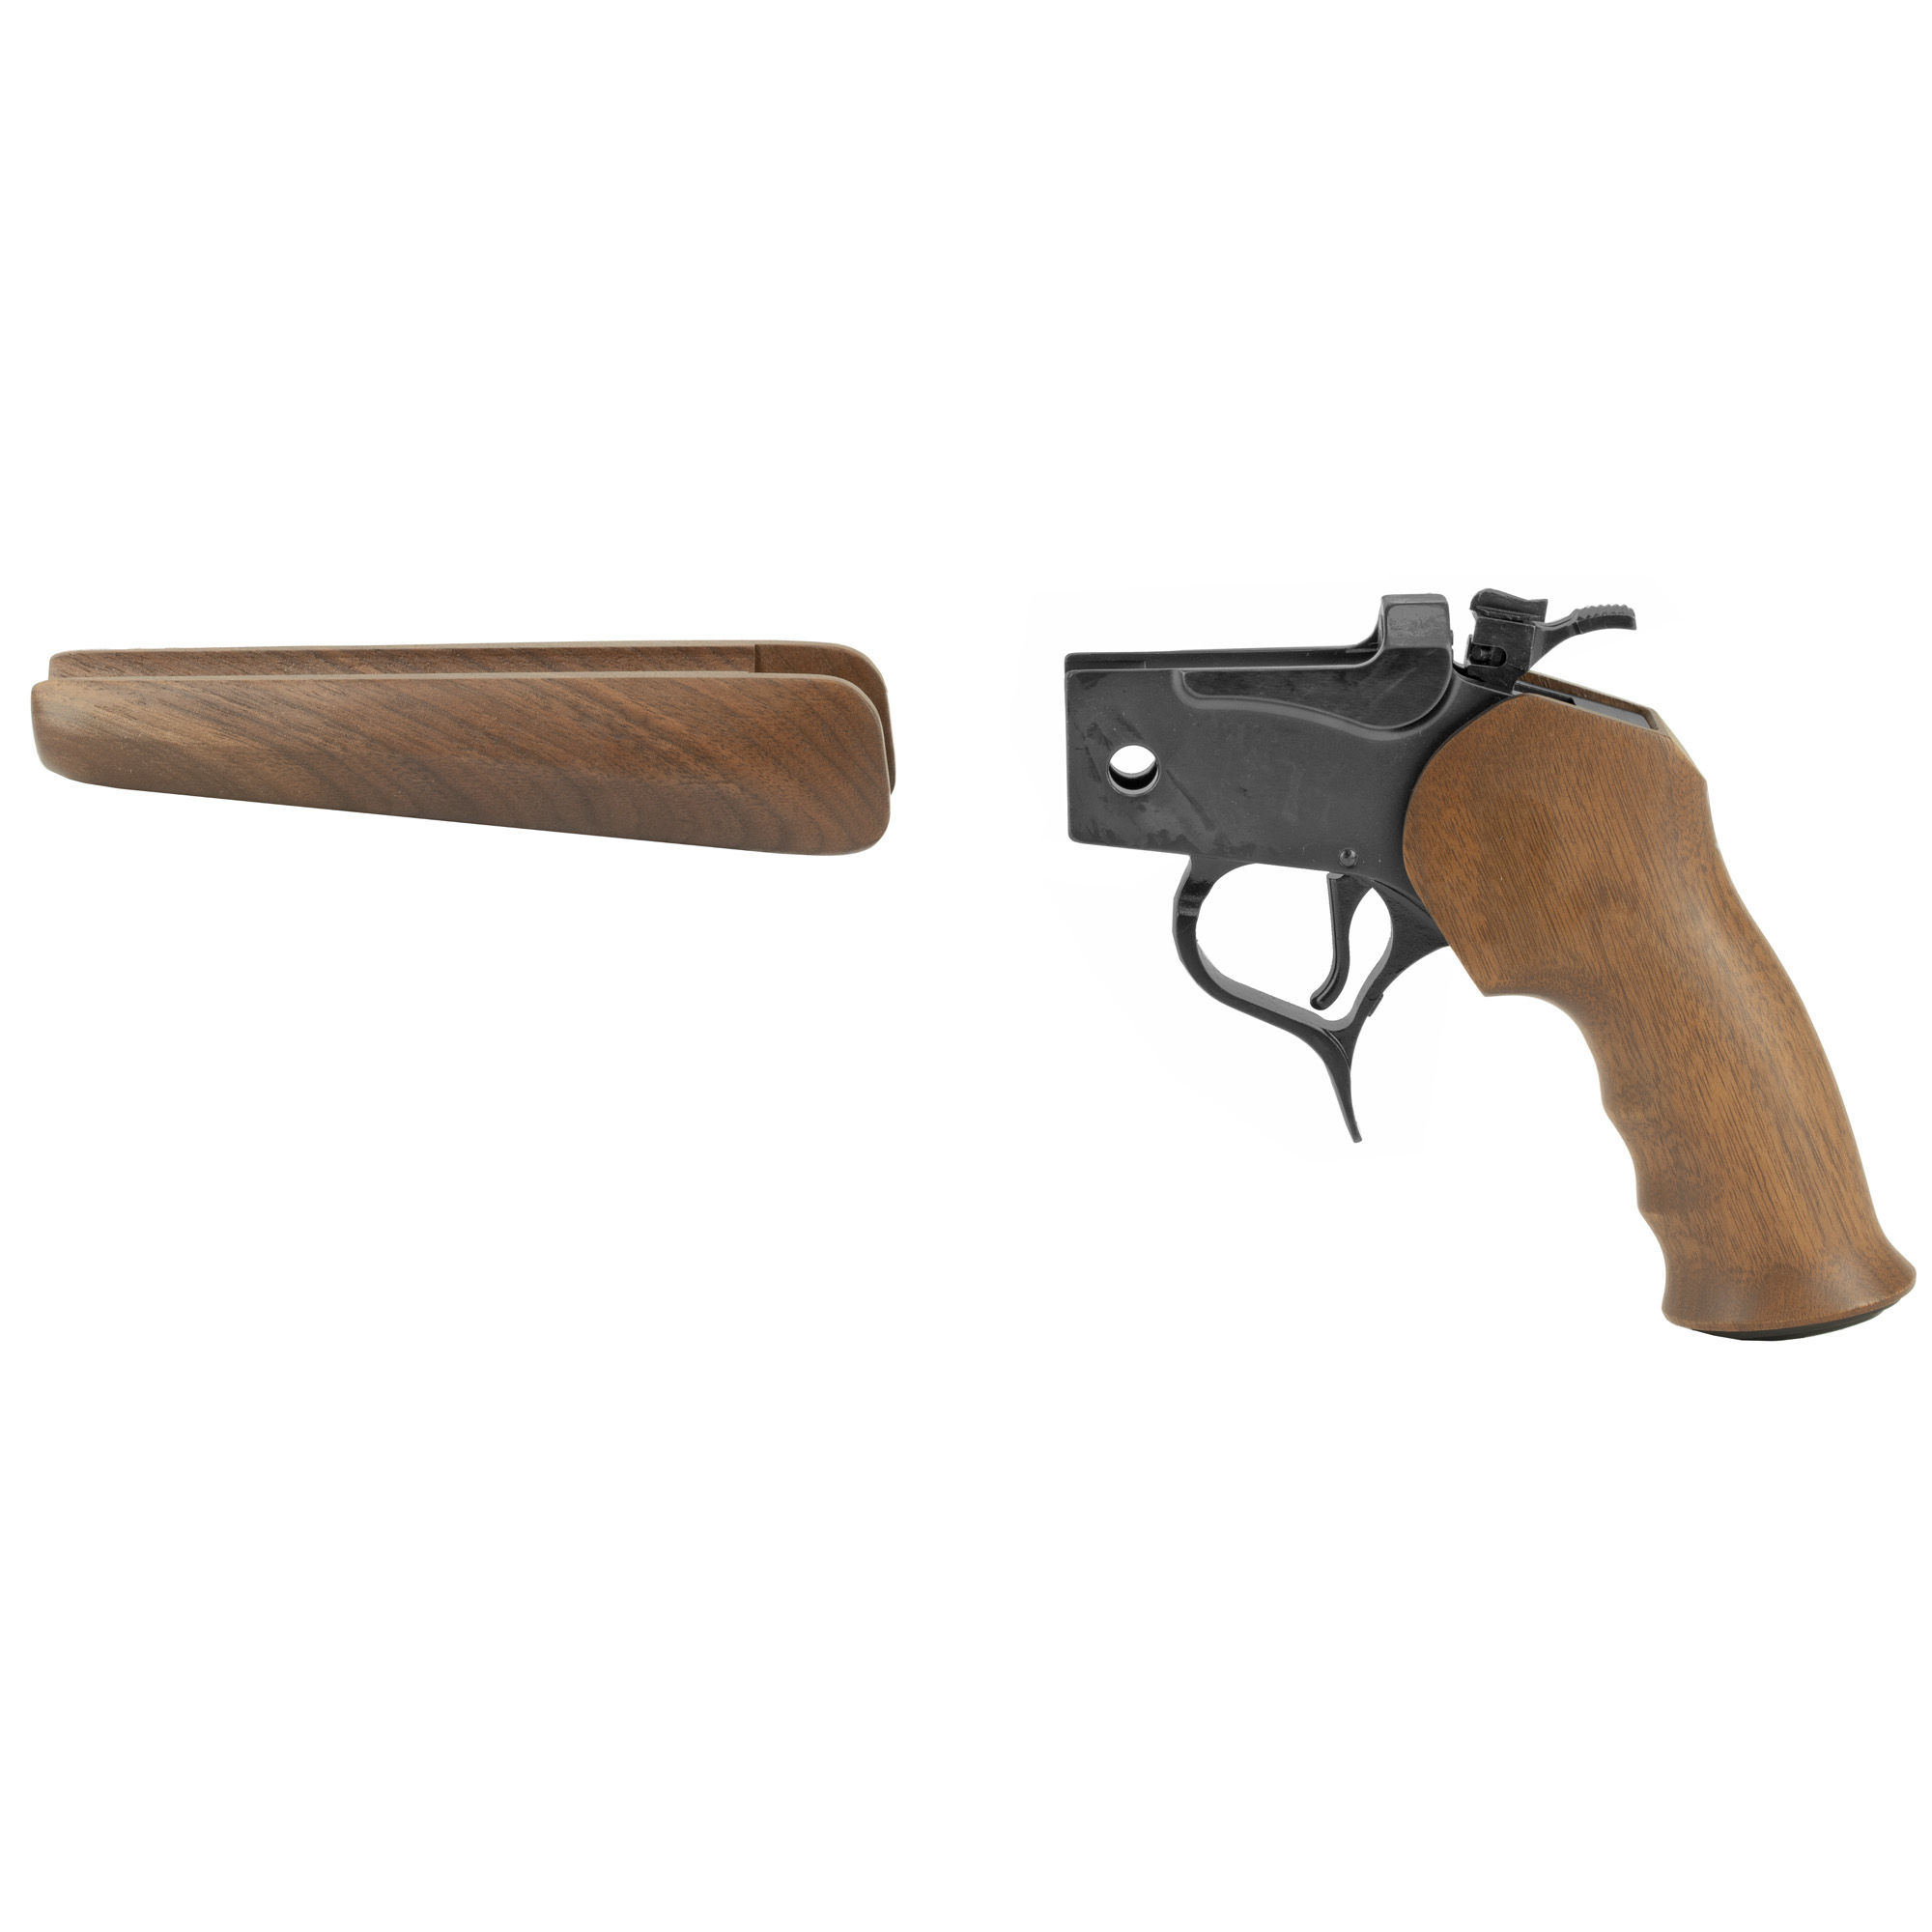 """Since the first CONTENDER(R) pistol was made in 1967"""" it has been the choice of serious handgun hunters around the world. Pistol frame assemblies include frame"""" grip"""" and pistol forend with hinge pin and forend screws."""